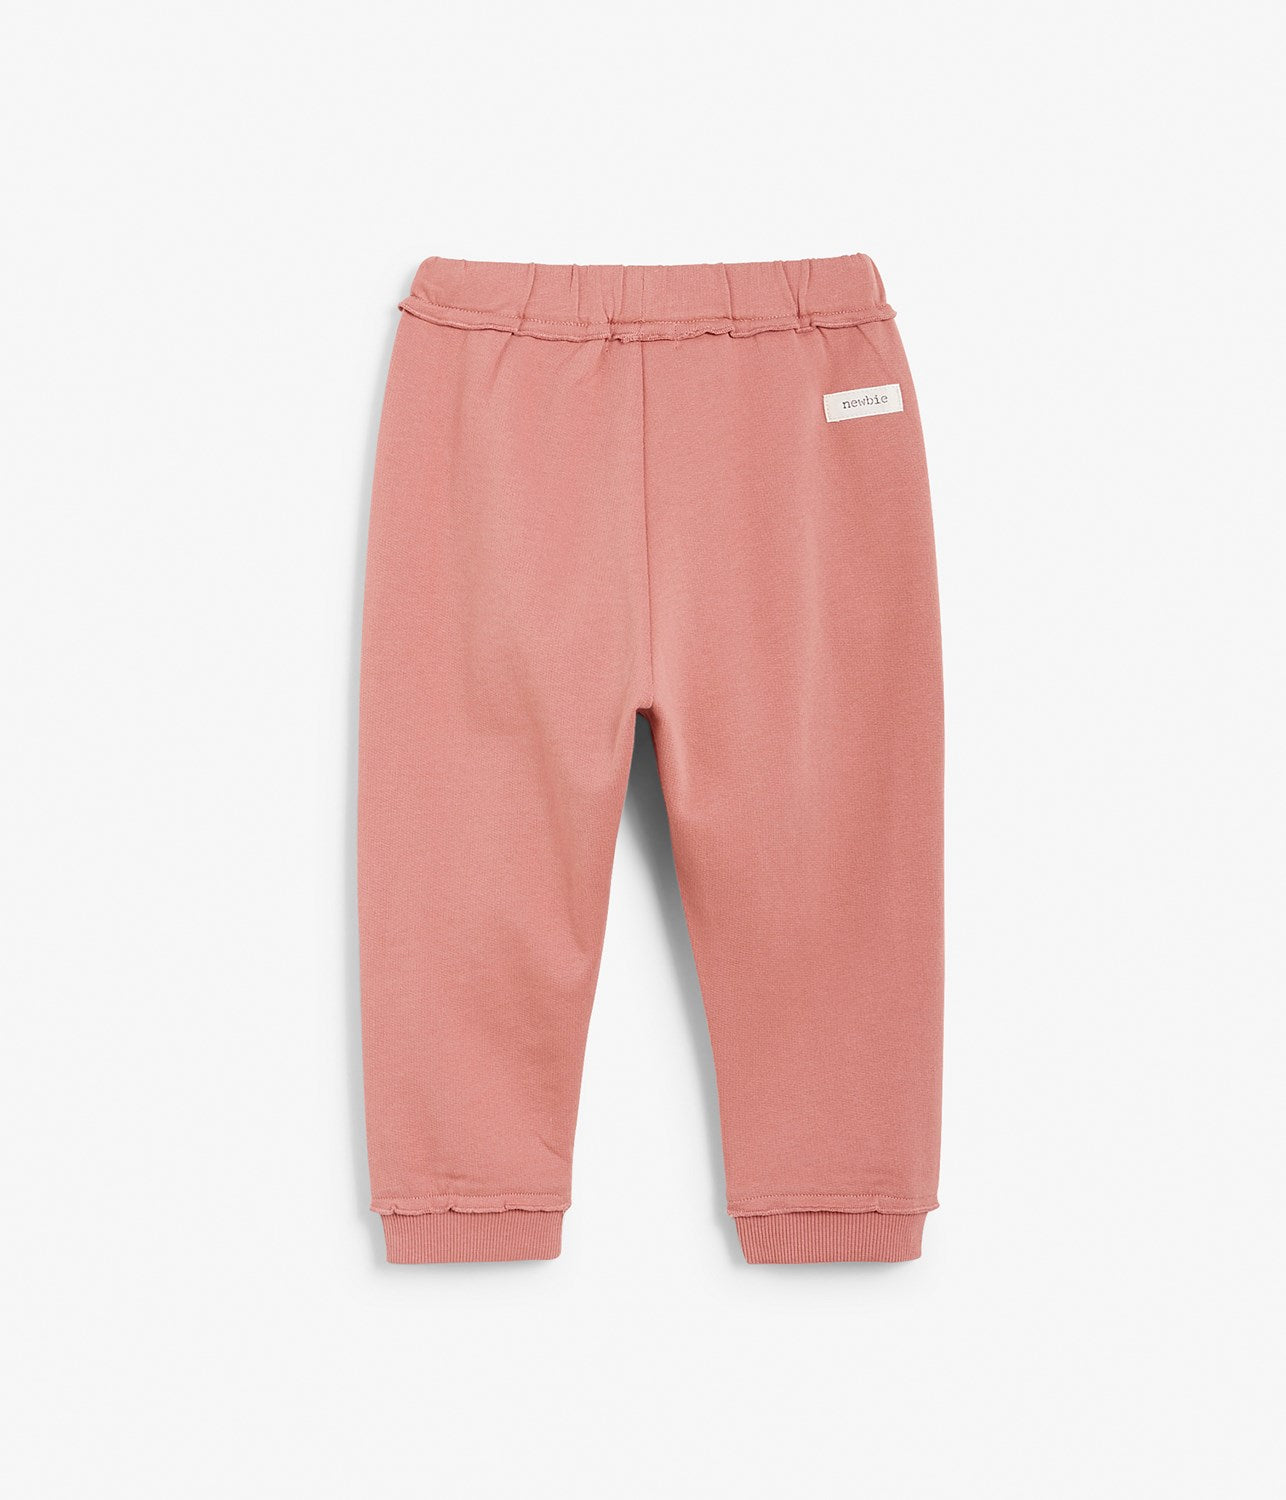 Baby pink sweatpants with ruffle details